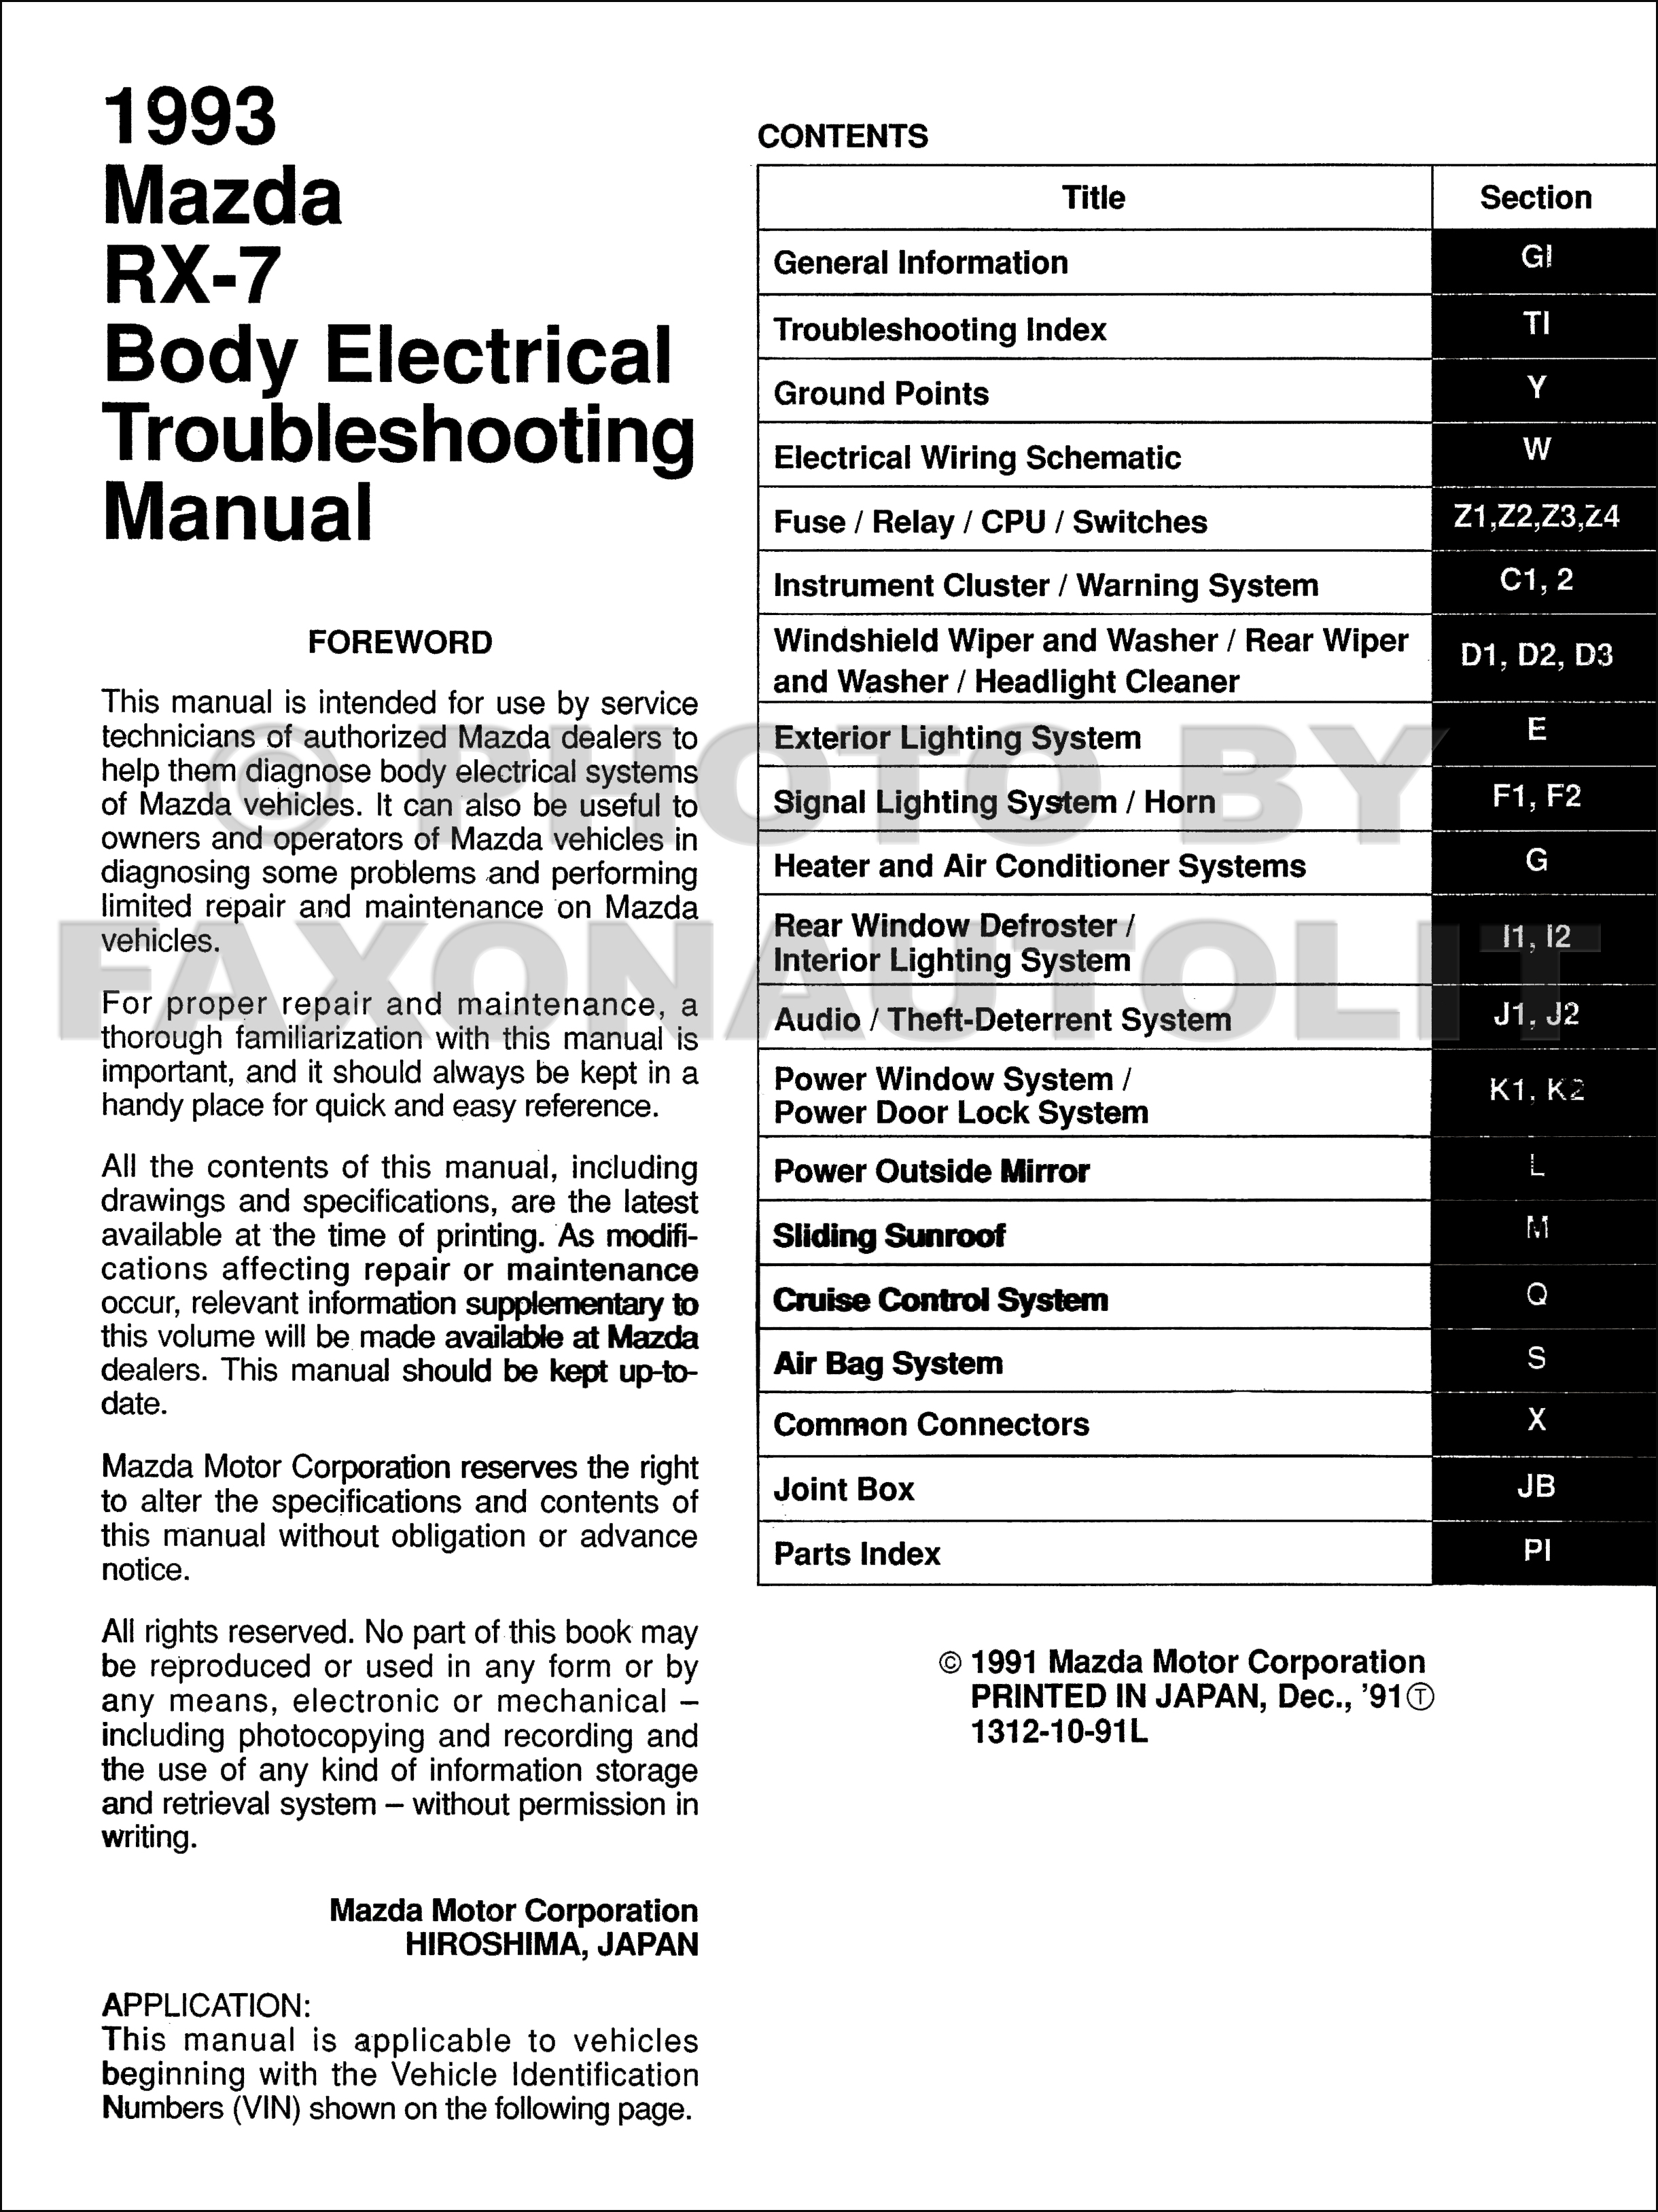 Mazda Rx 7 Stereo Wiring Diagram 1993 Schematic Online Schematics Body Electrical Troubleshooting Manual Original 1979